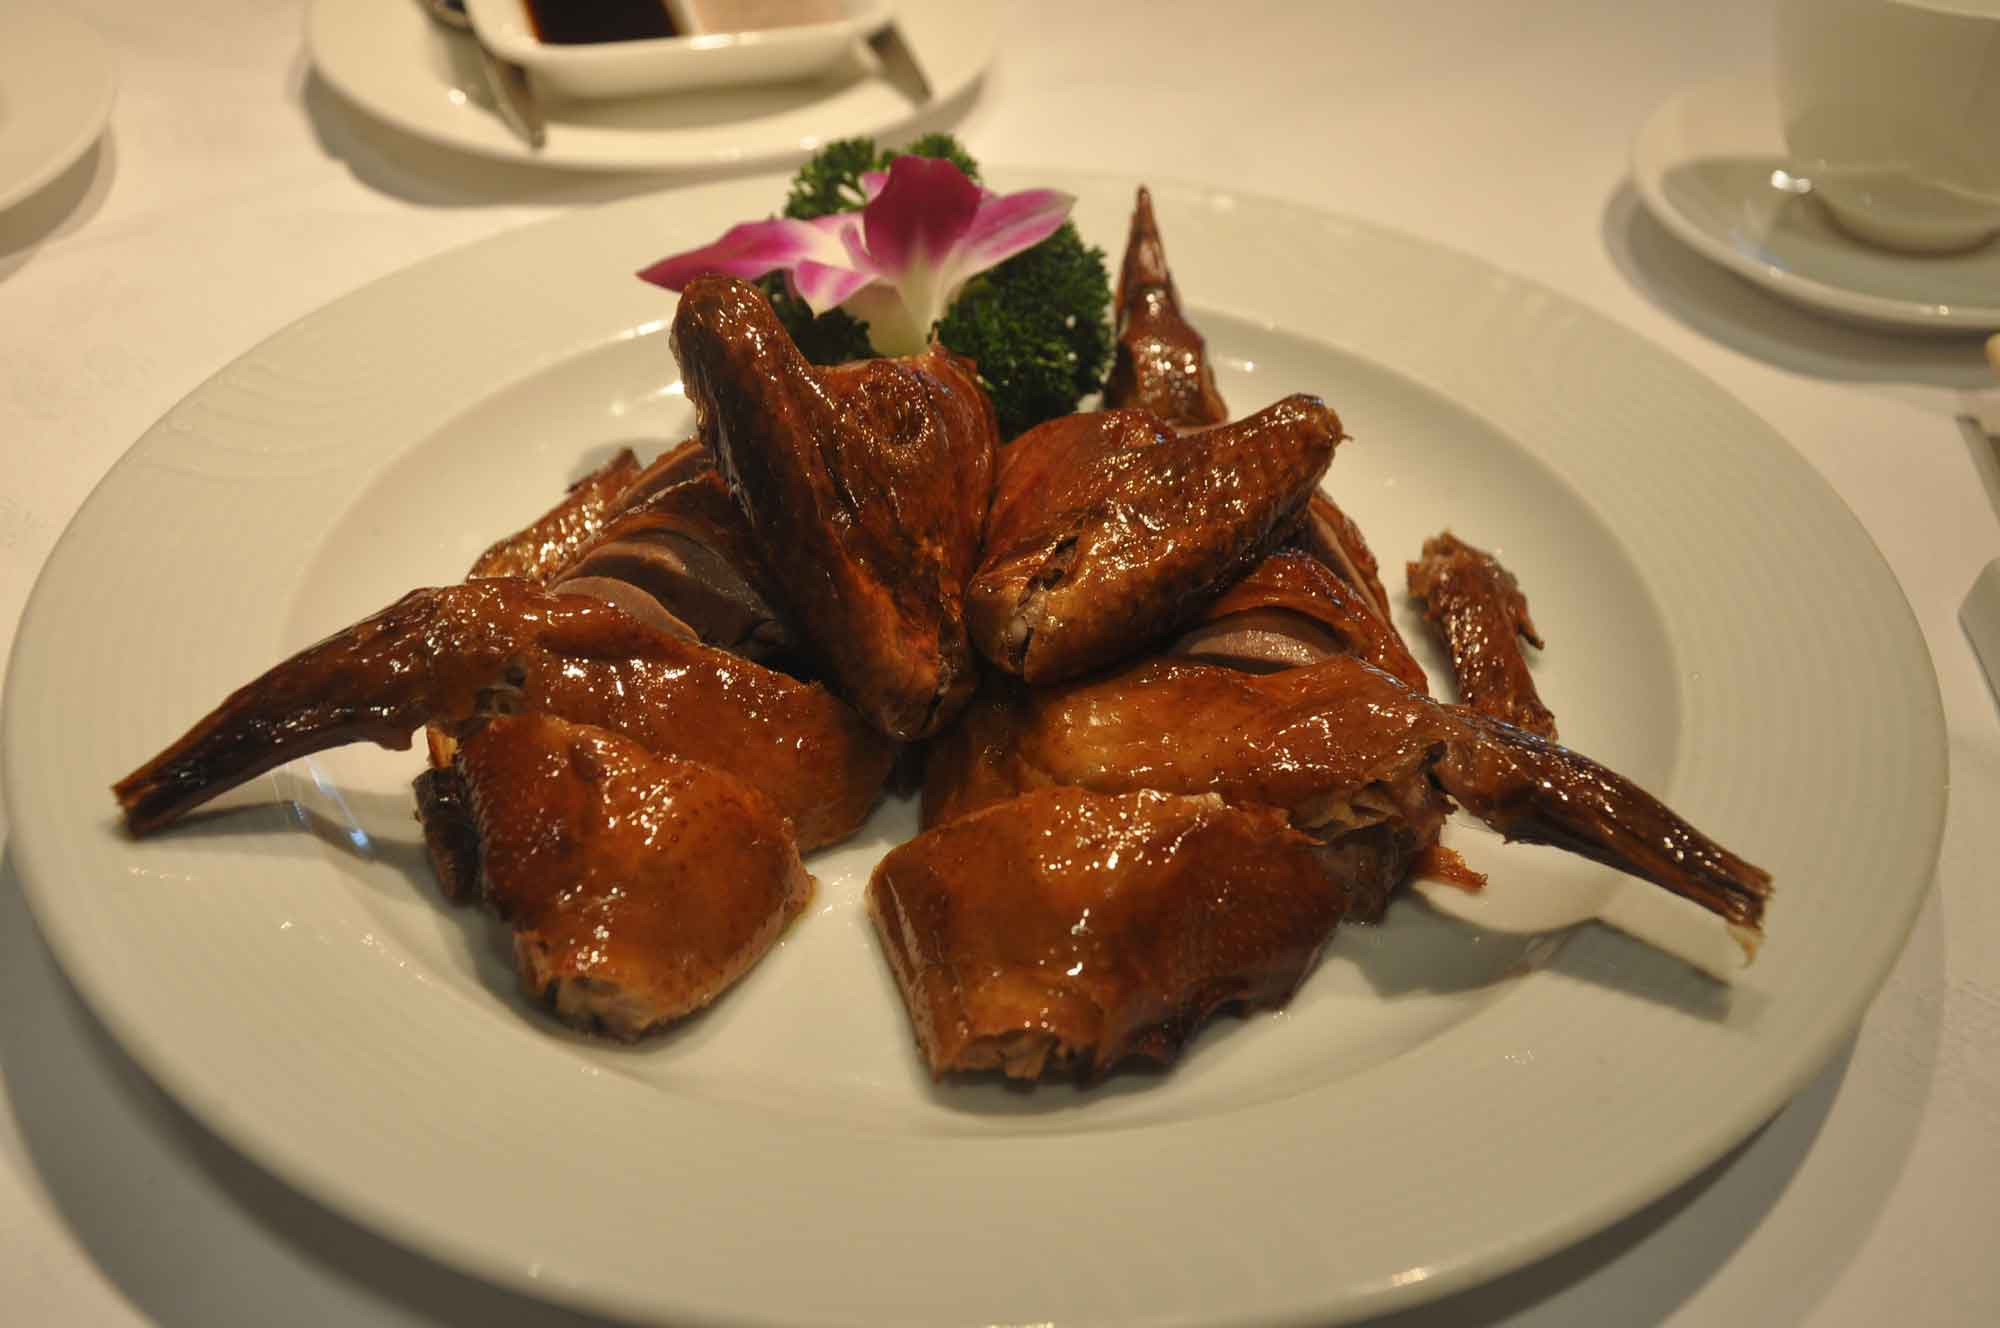 Famous Macau Dishes: Roasted Pigeon at Tim's Kitchen